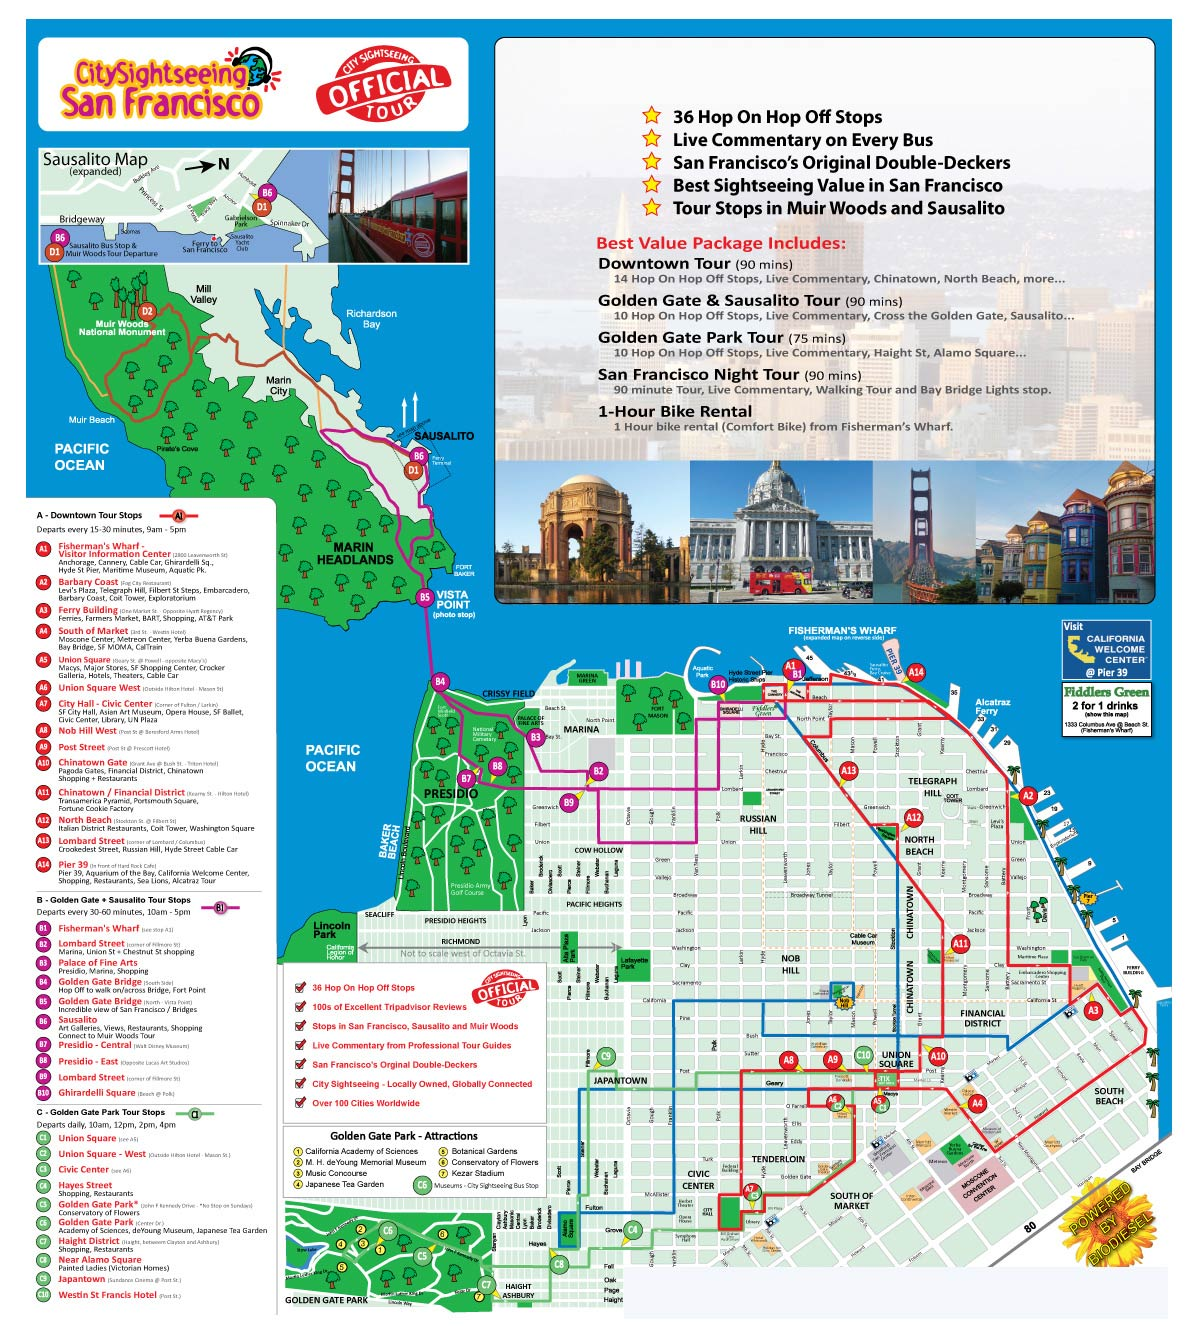 Sightseeing or Tour deals in San Francisco, CA: 50 to 90% off deals in San Francisco. Hop On/Hop Off Tour for Adults or Children from City Sightseeing (Up to 36% Off). Double-Decker Night Bus Tour for One Adult or One Child from City Sightseeing (Up to 12% Off). Muir Woods, Giant Redwoods, and Sausalito Half-Day Trip.